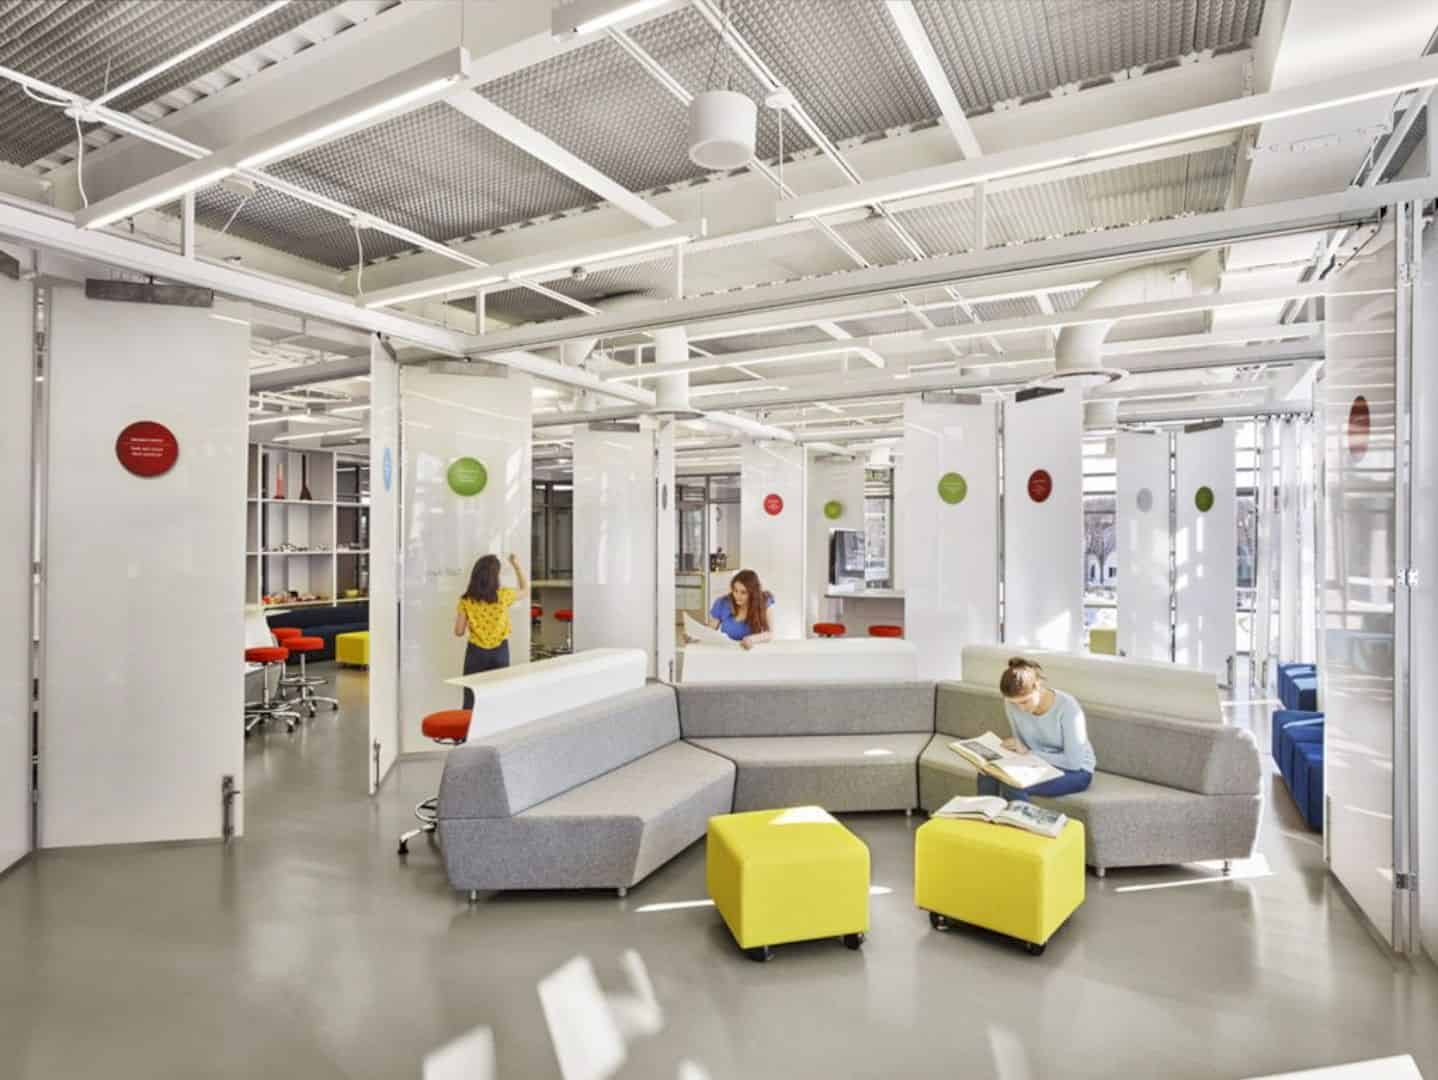 Germantown academy innovation lab and makerspace for Innovation lab